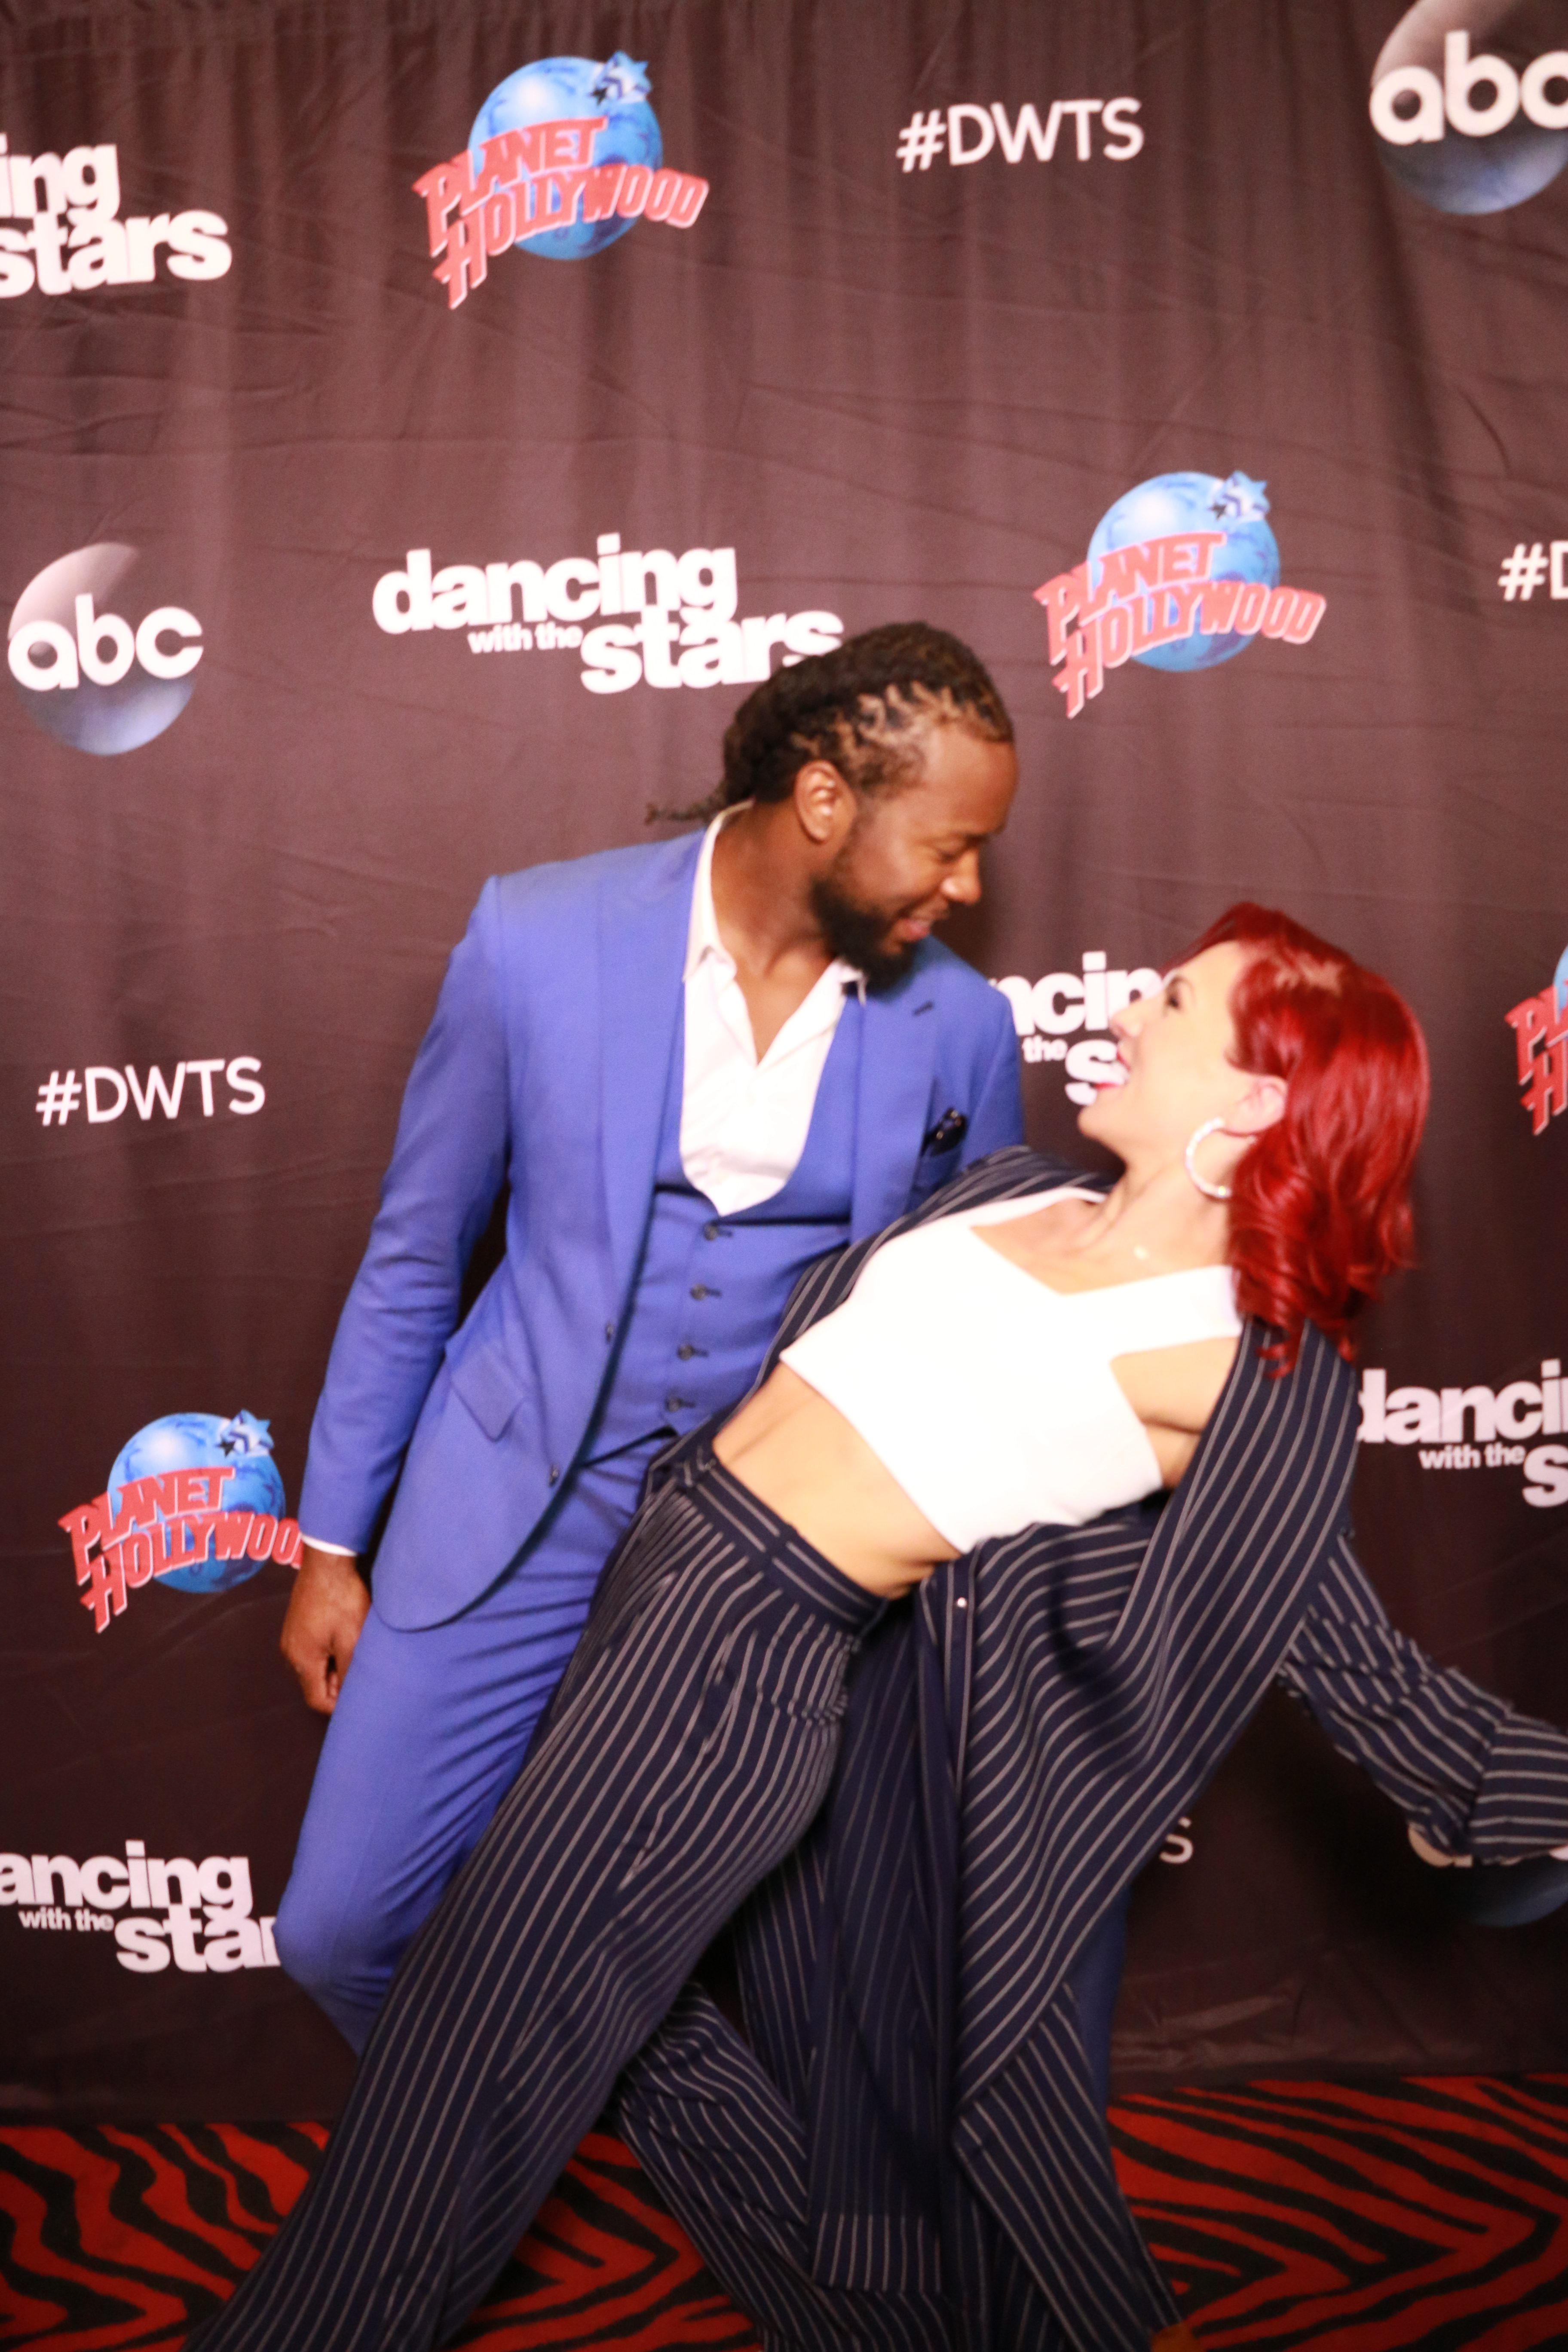 <div class='meta'><div class='origin-logo' data-origin='none'></div><span class='caption-text' data-credit='Heather Harkins/WABC'>Josh Norman with Sharna Burgess on the red carpet of the ''Dancing with the Stars'' cast announcement on ''Good Morning America.''</span></div>